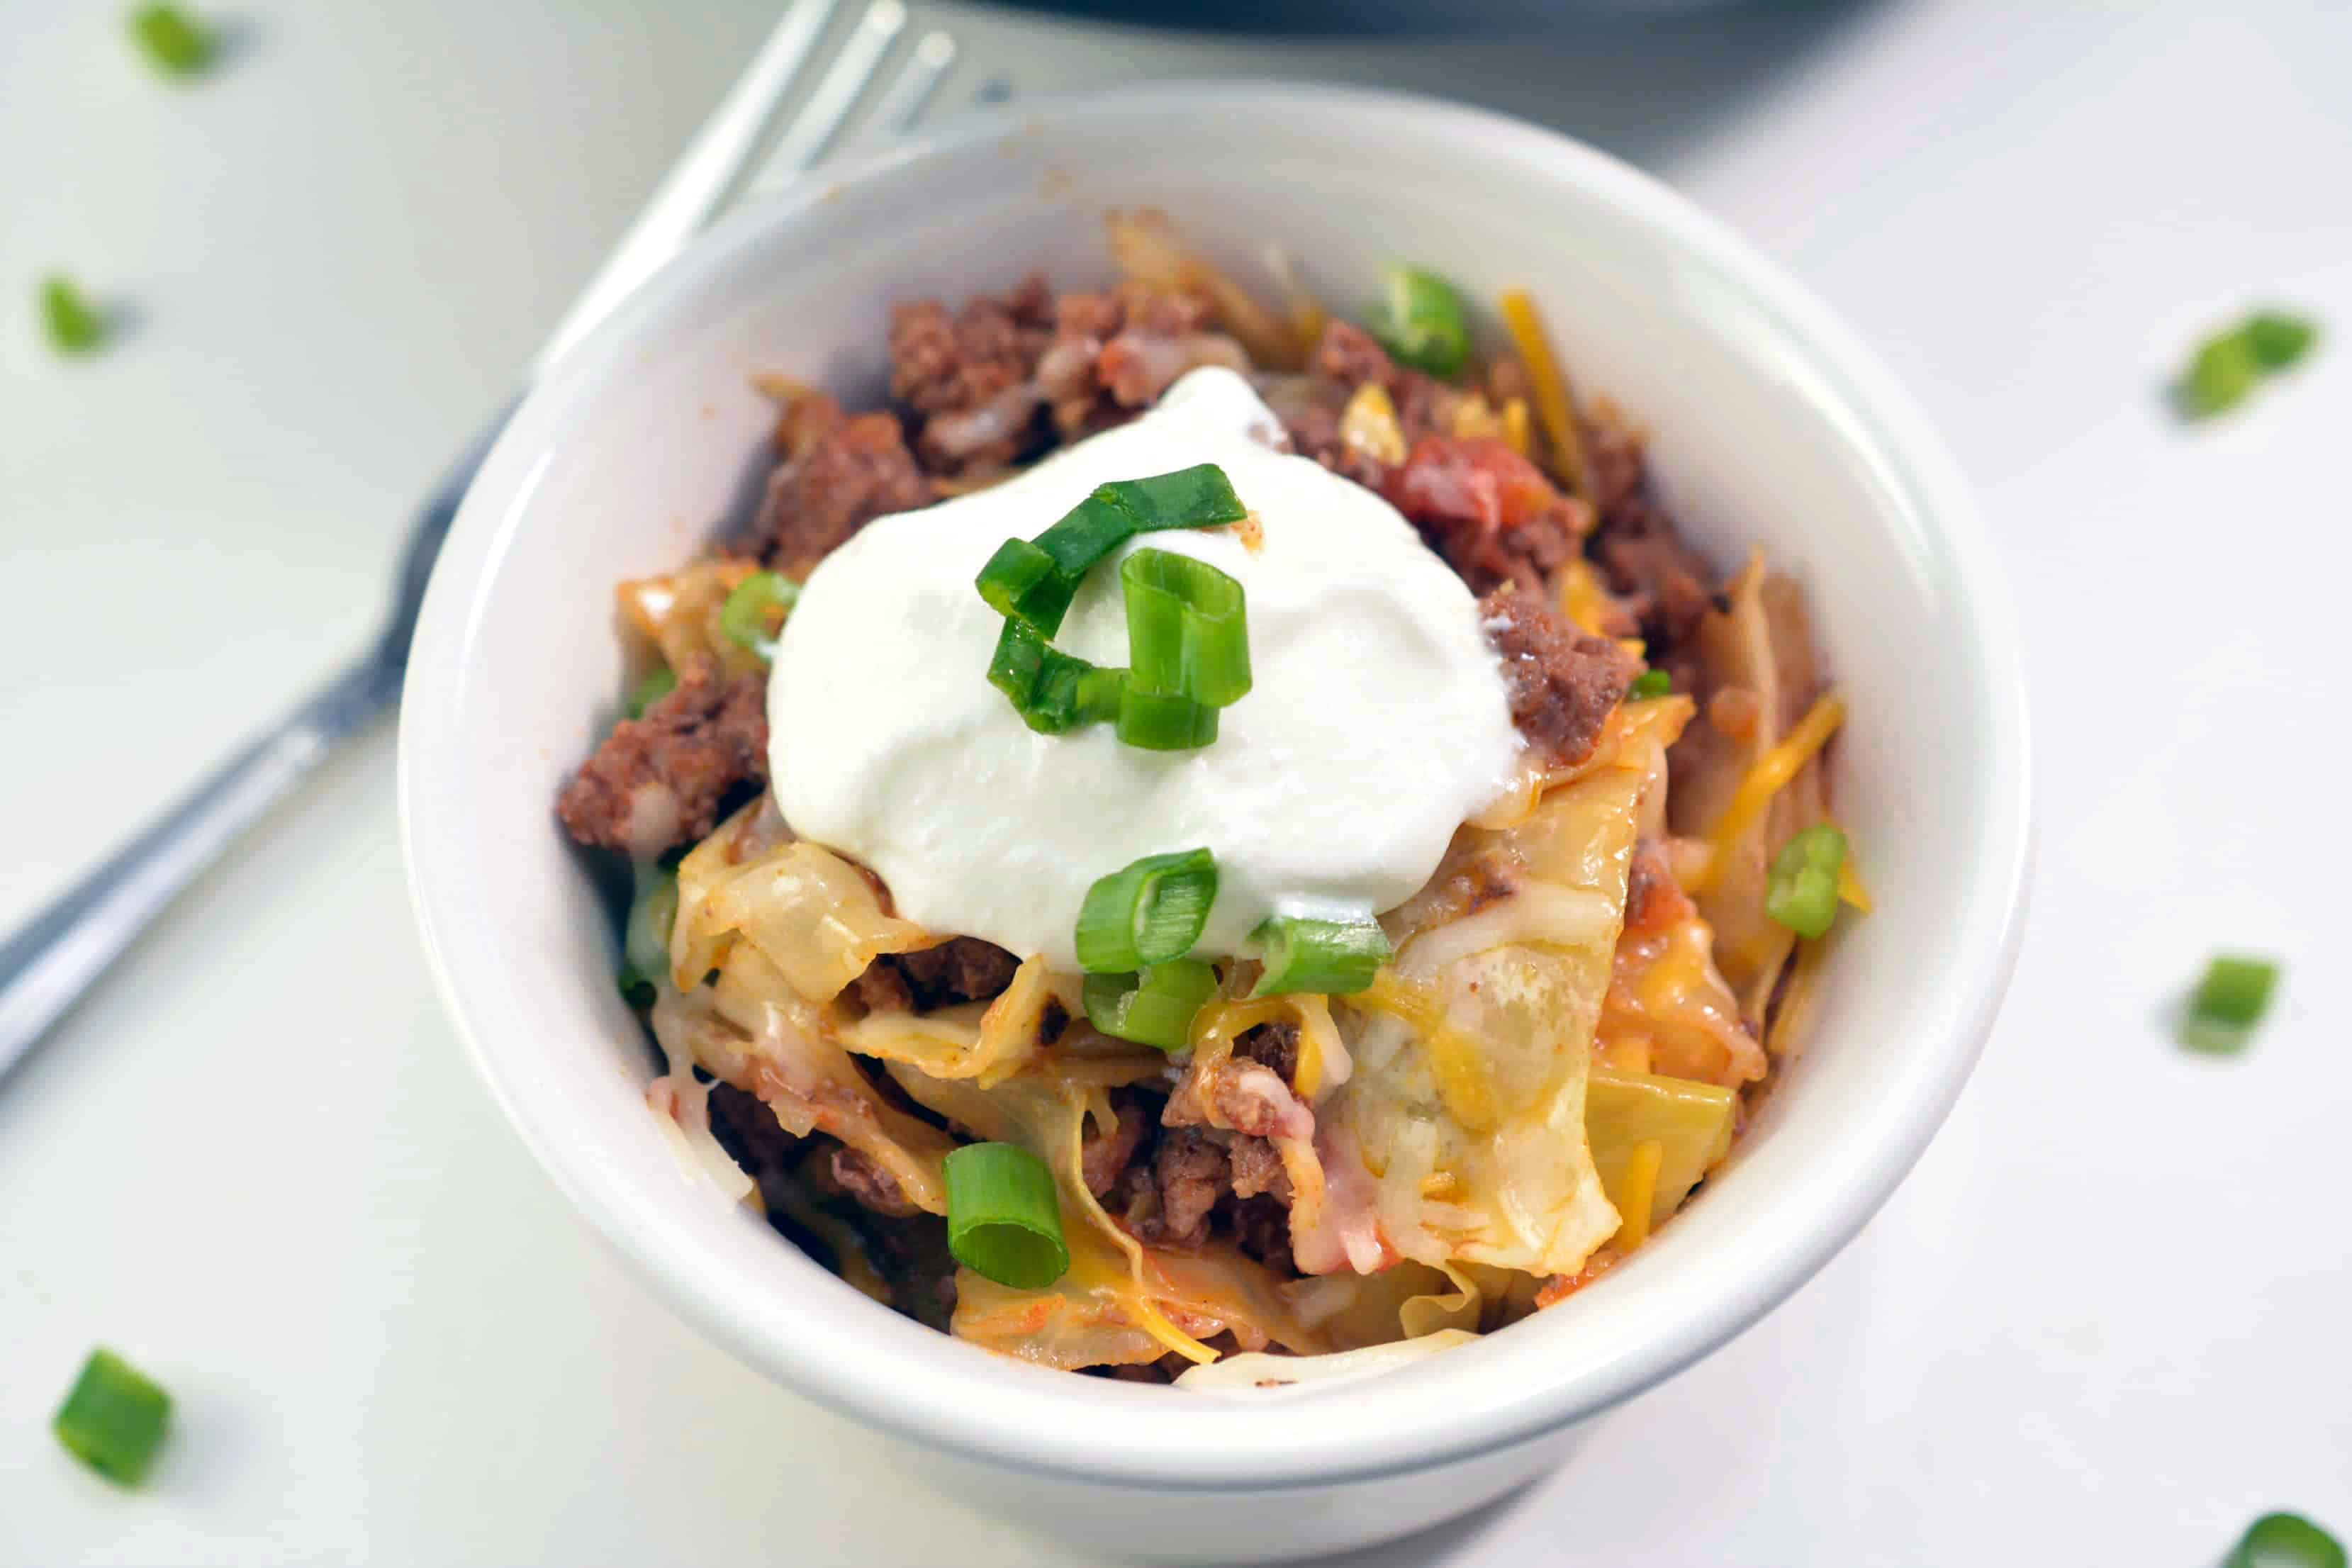 Bowl of ground beef and cabbage